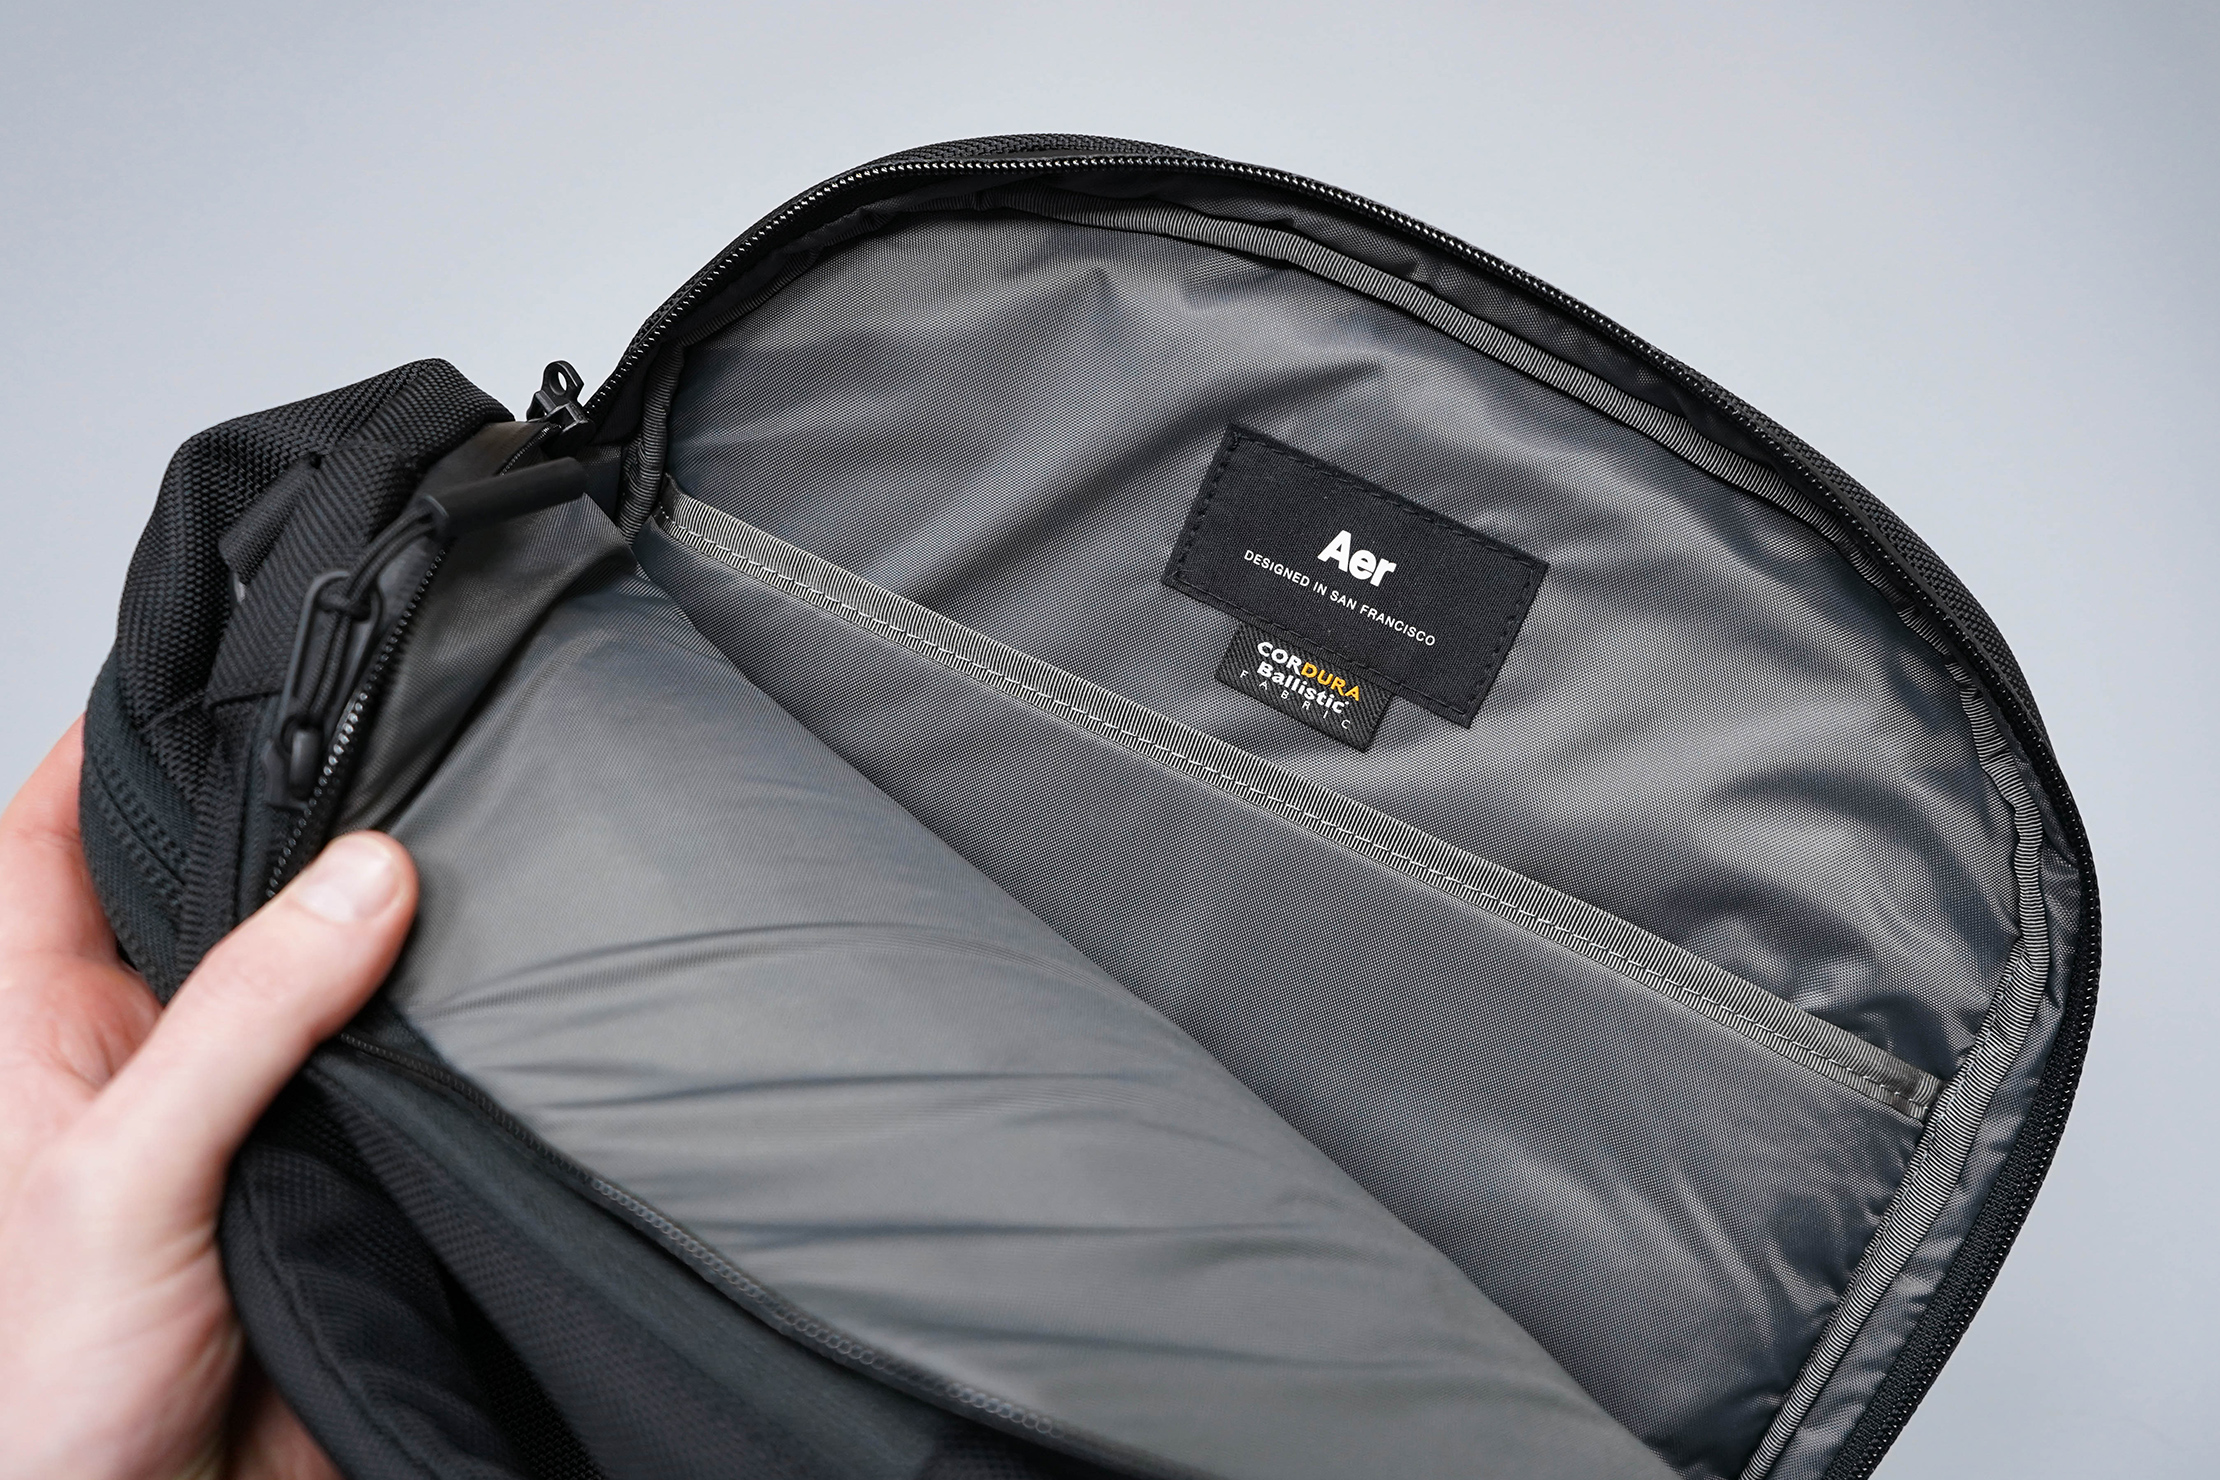 Aer Travel Pack 2 Small Laptop Compartment